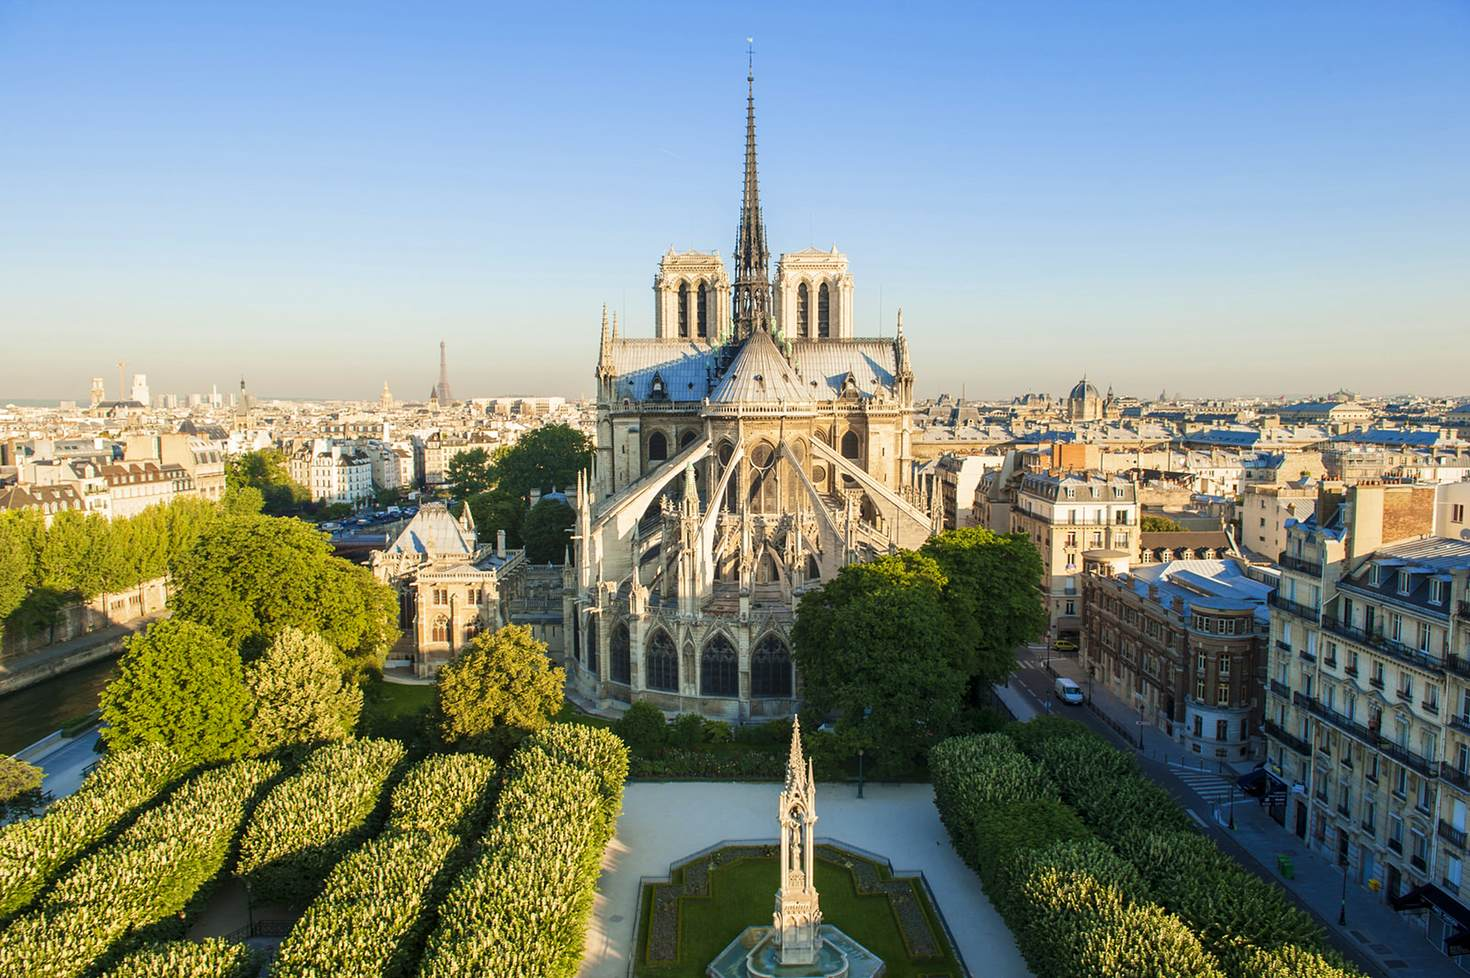 Notre Dame Cathedral, Paris © TARDY Herv / hemis.fr / Getty Images